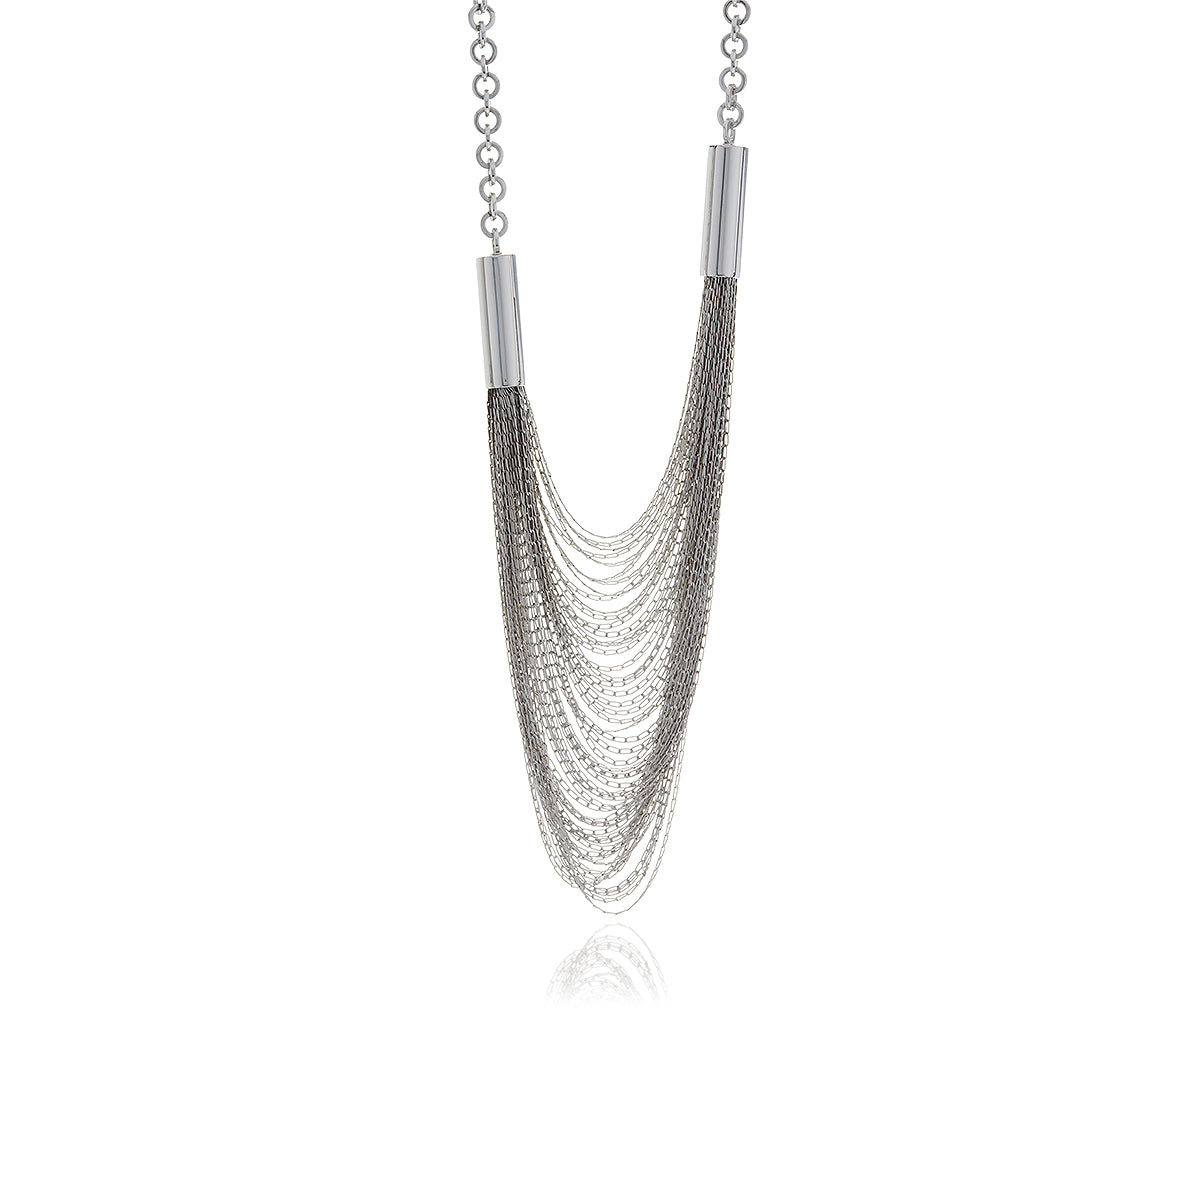 Releve Silver Long Chain Necklace - MCK Brands